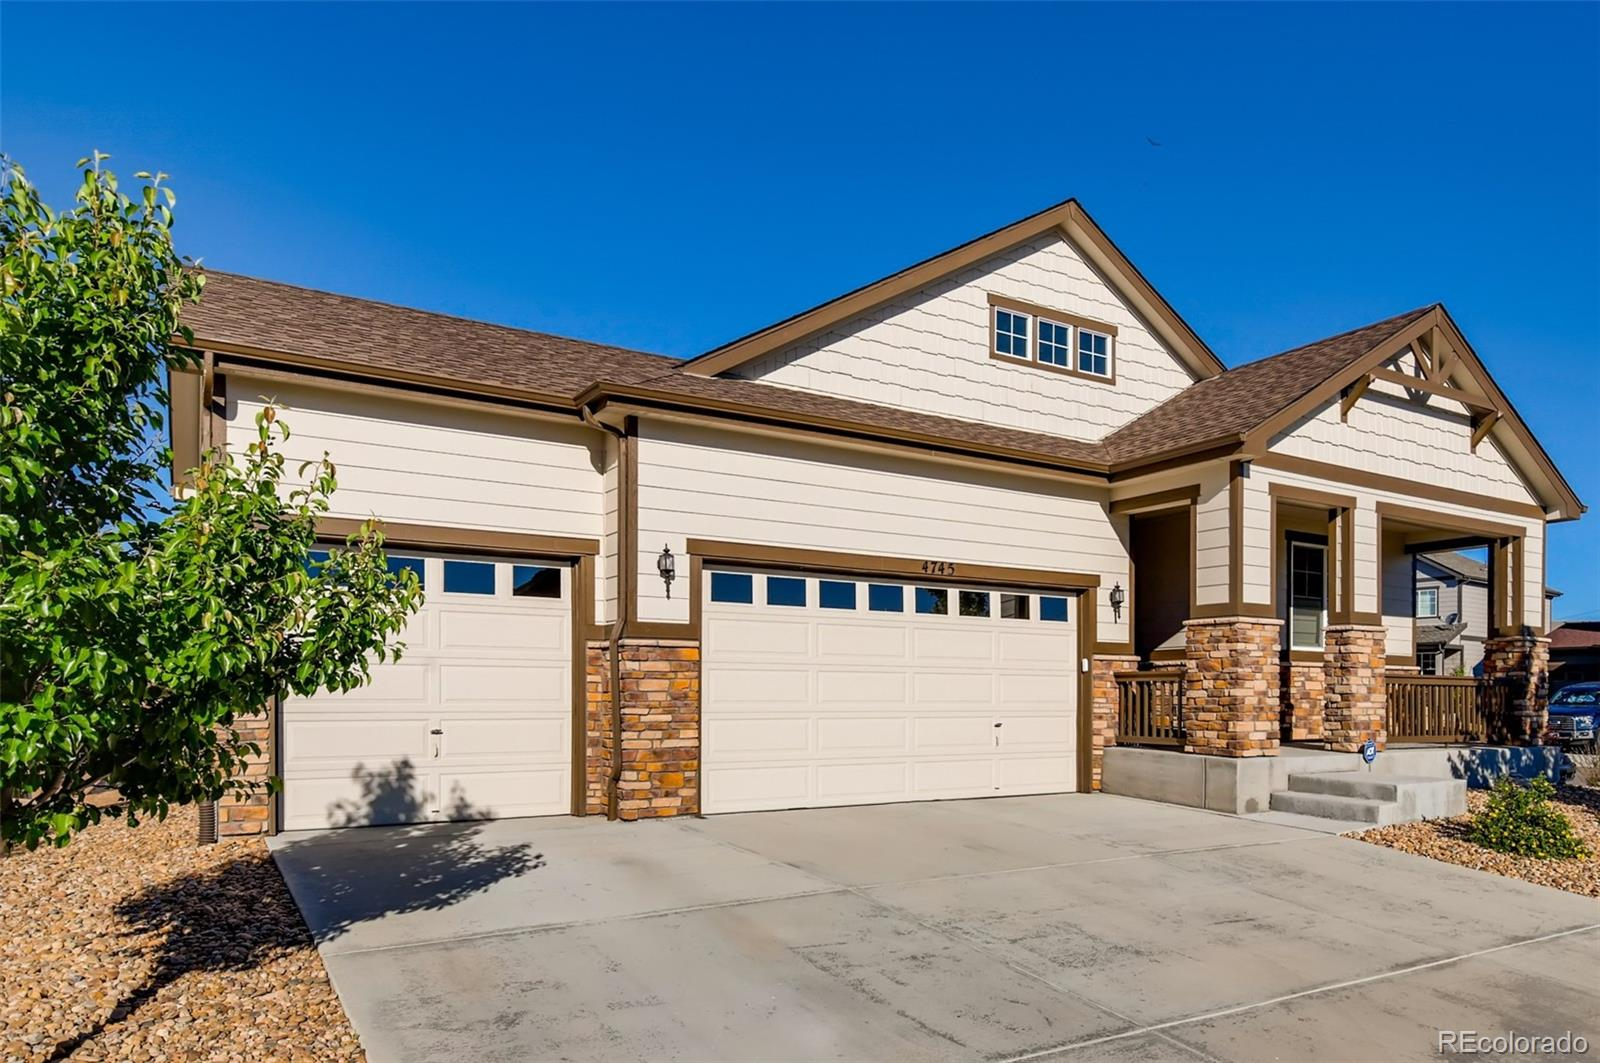 4745 S Netherland Street Property Photo - Aurora, CO real estate listing